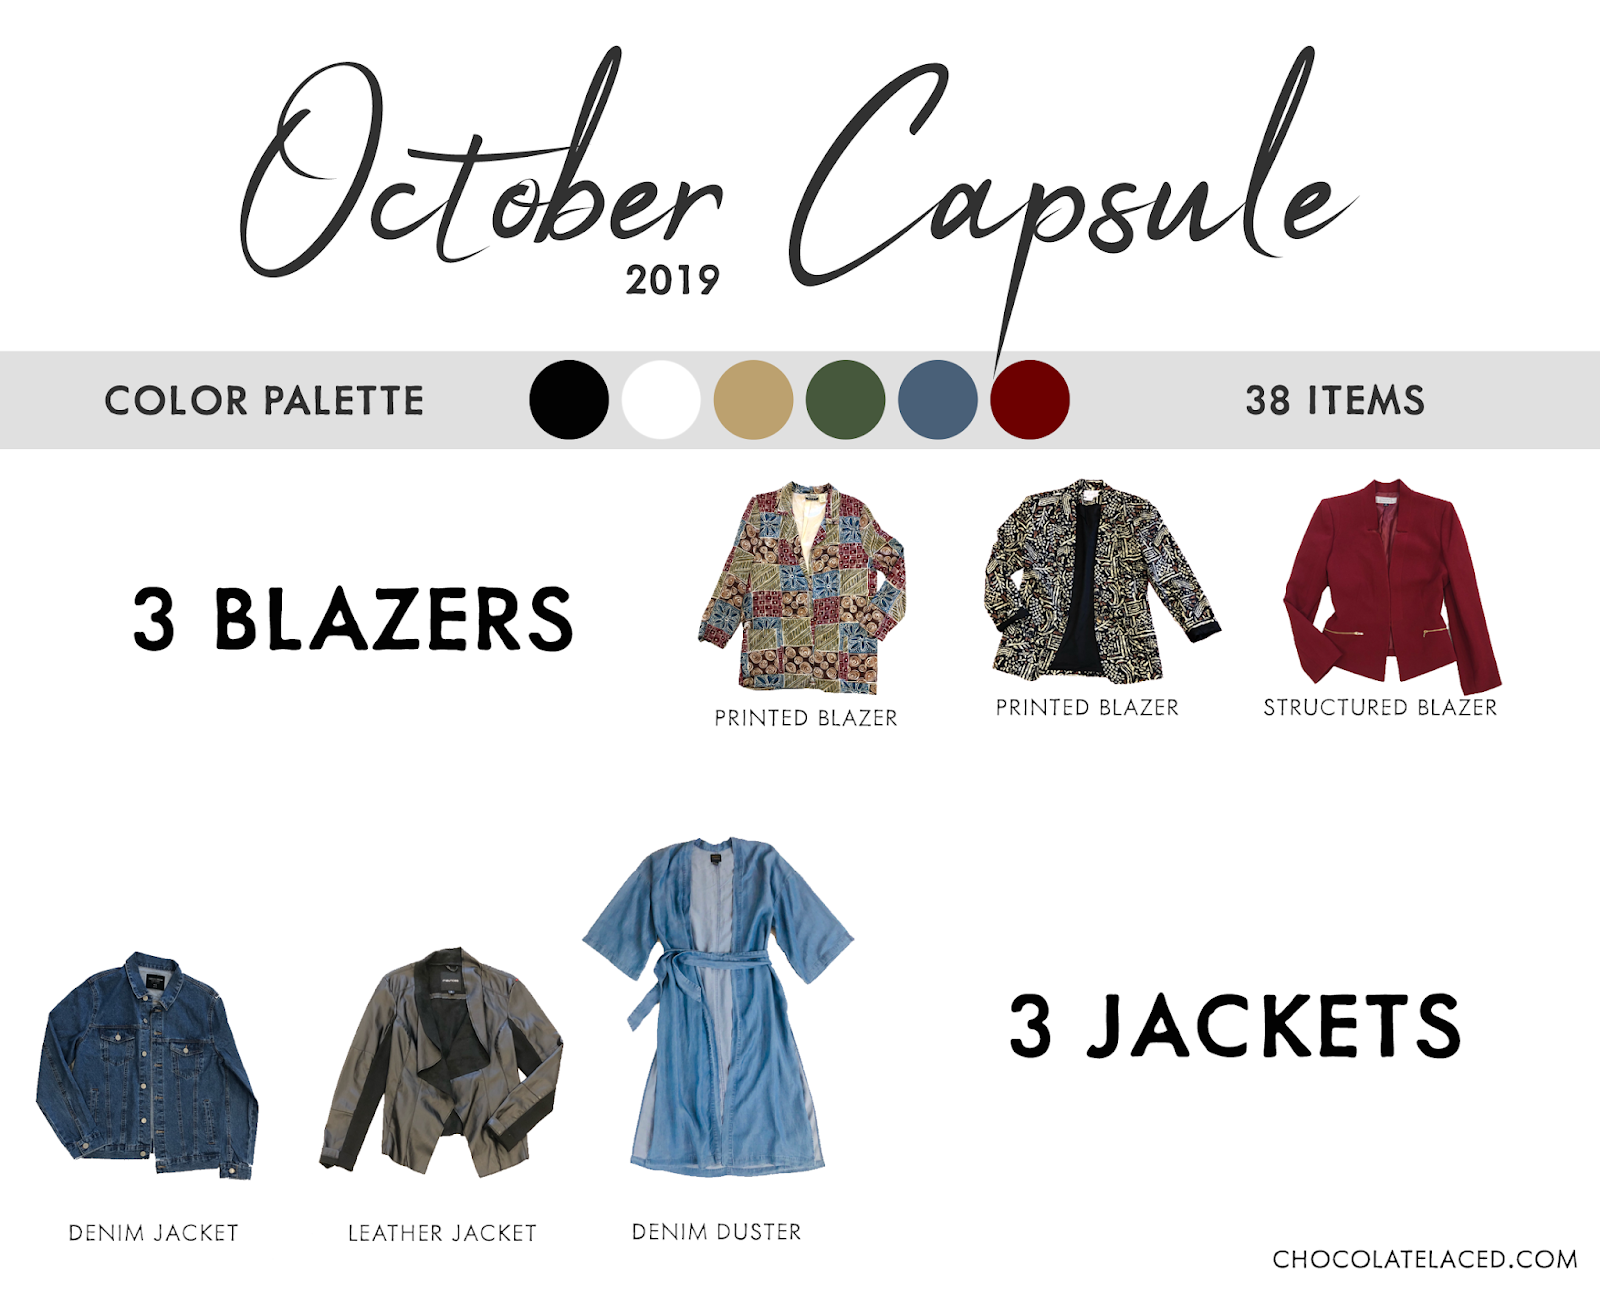 October capsule closet jackets and blazers